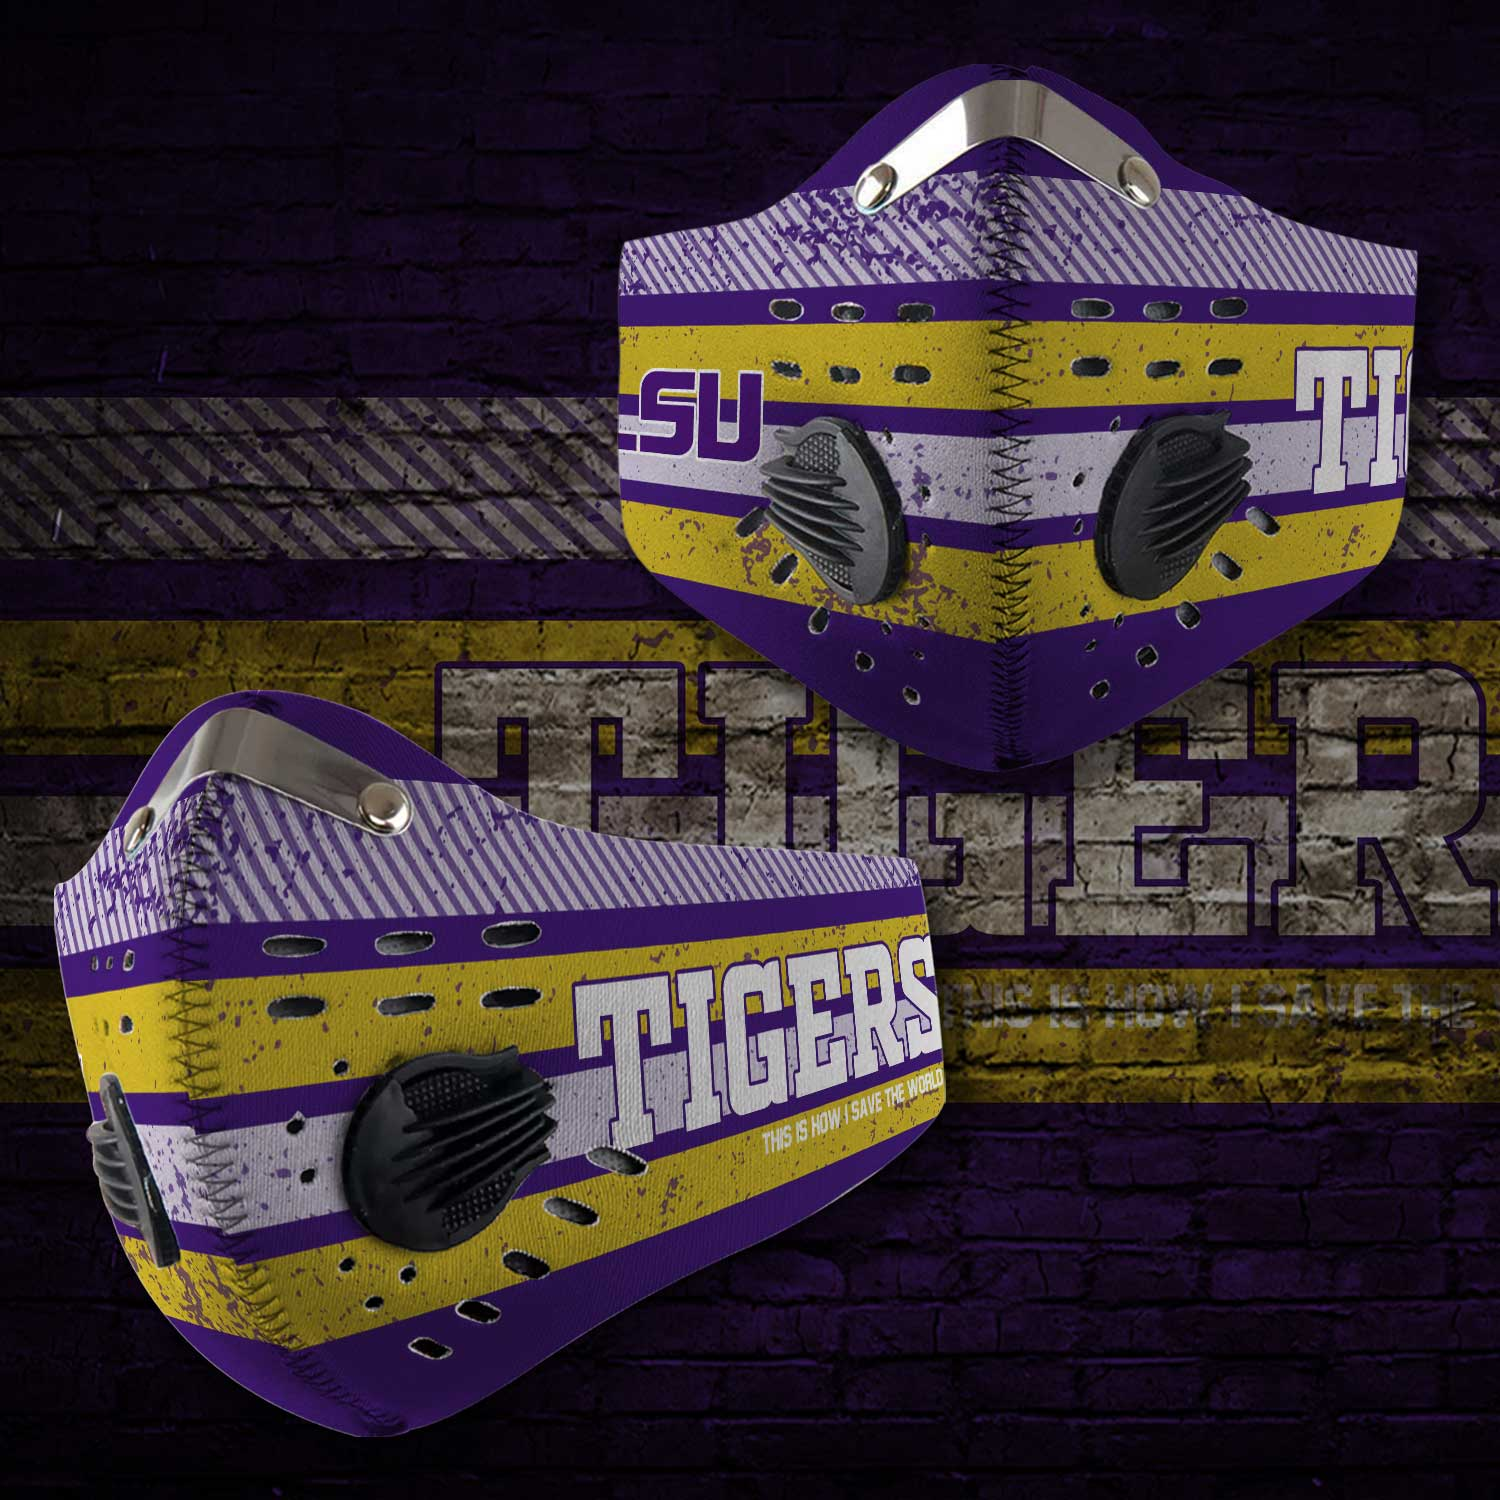 LSU tigers football this is how i save the world carbon filter face mask 2